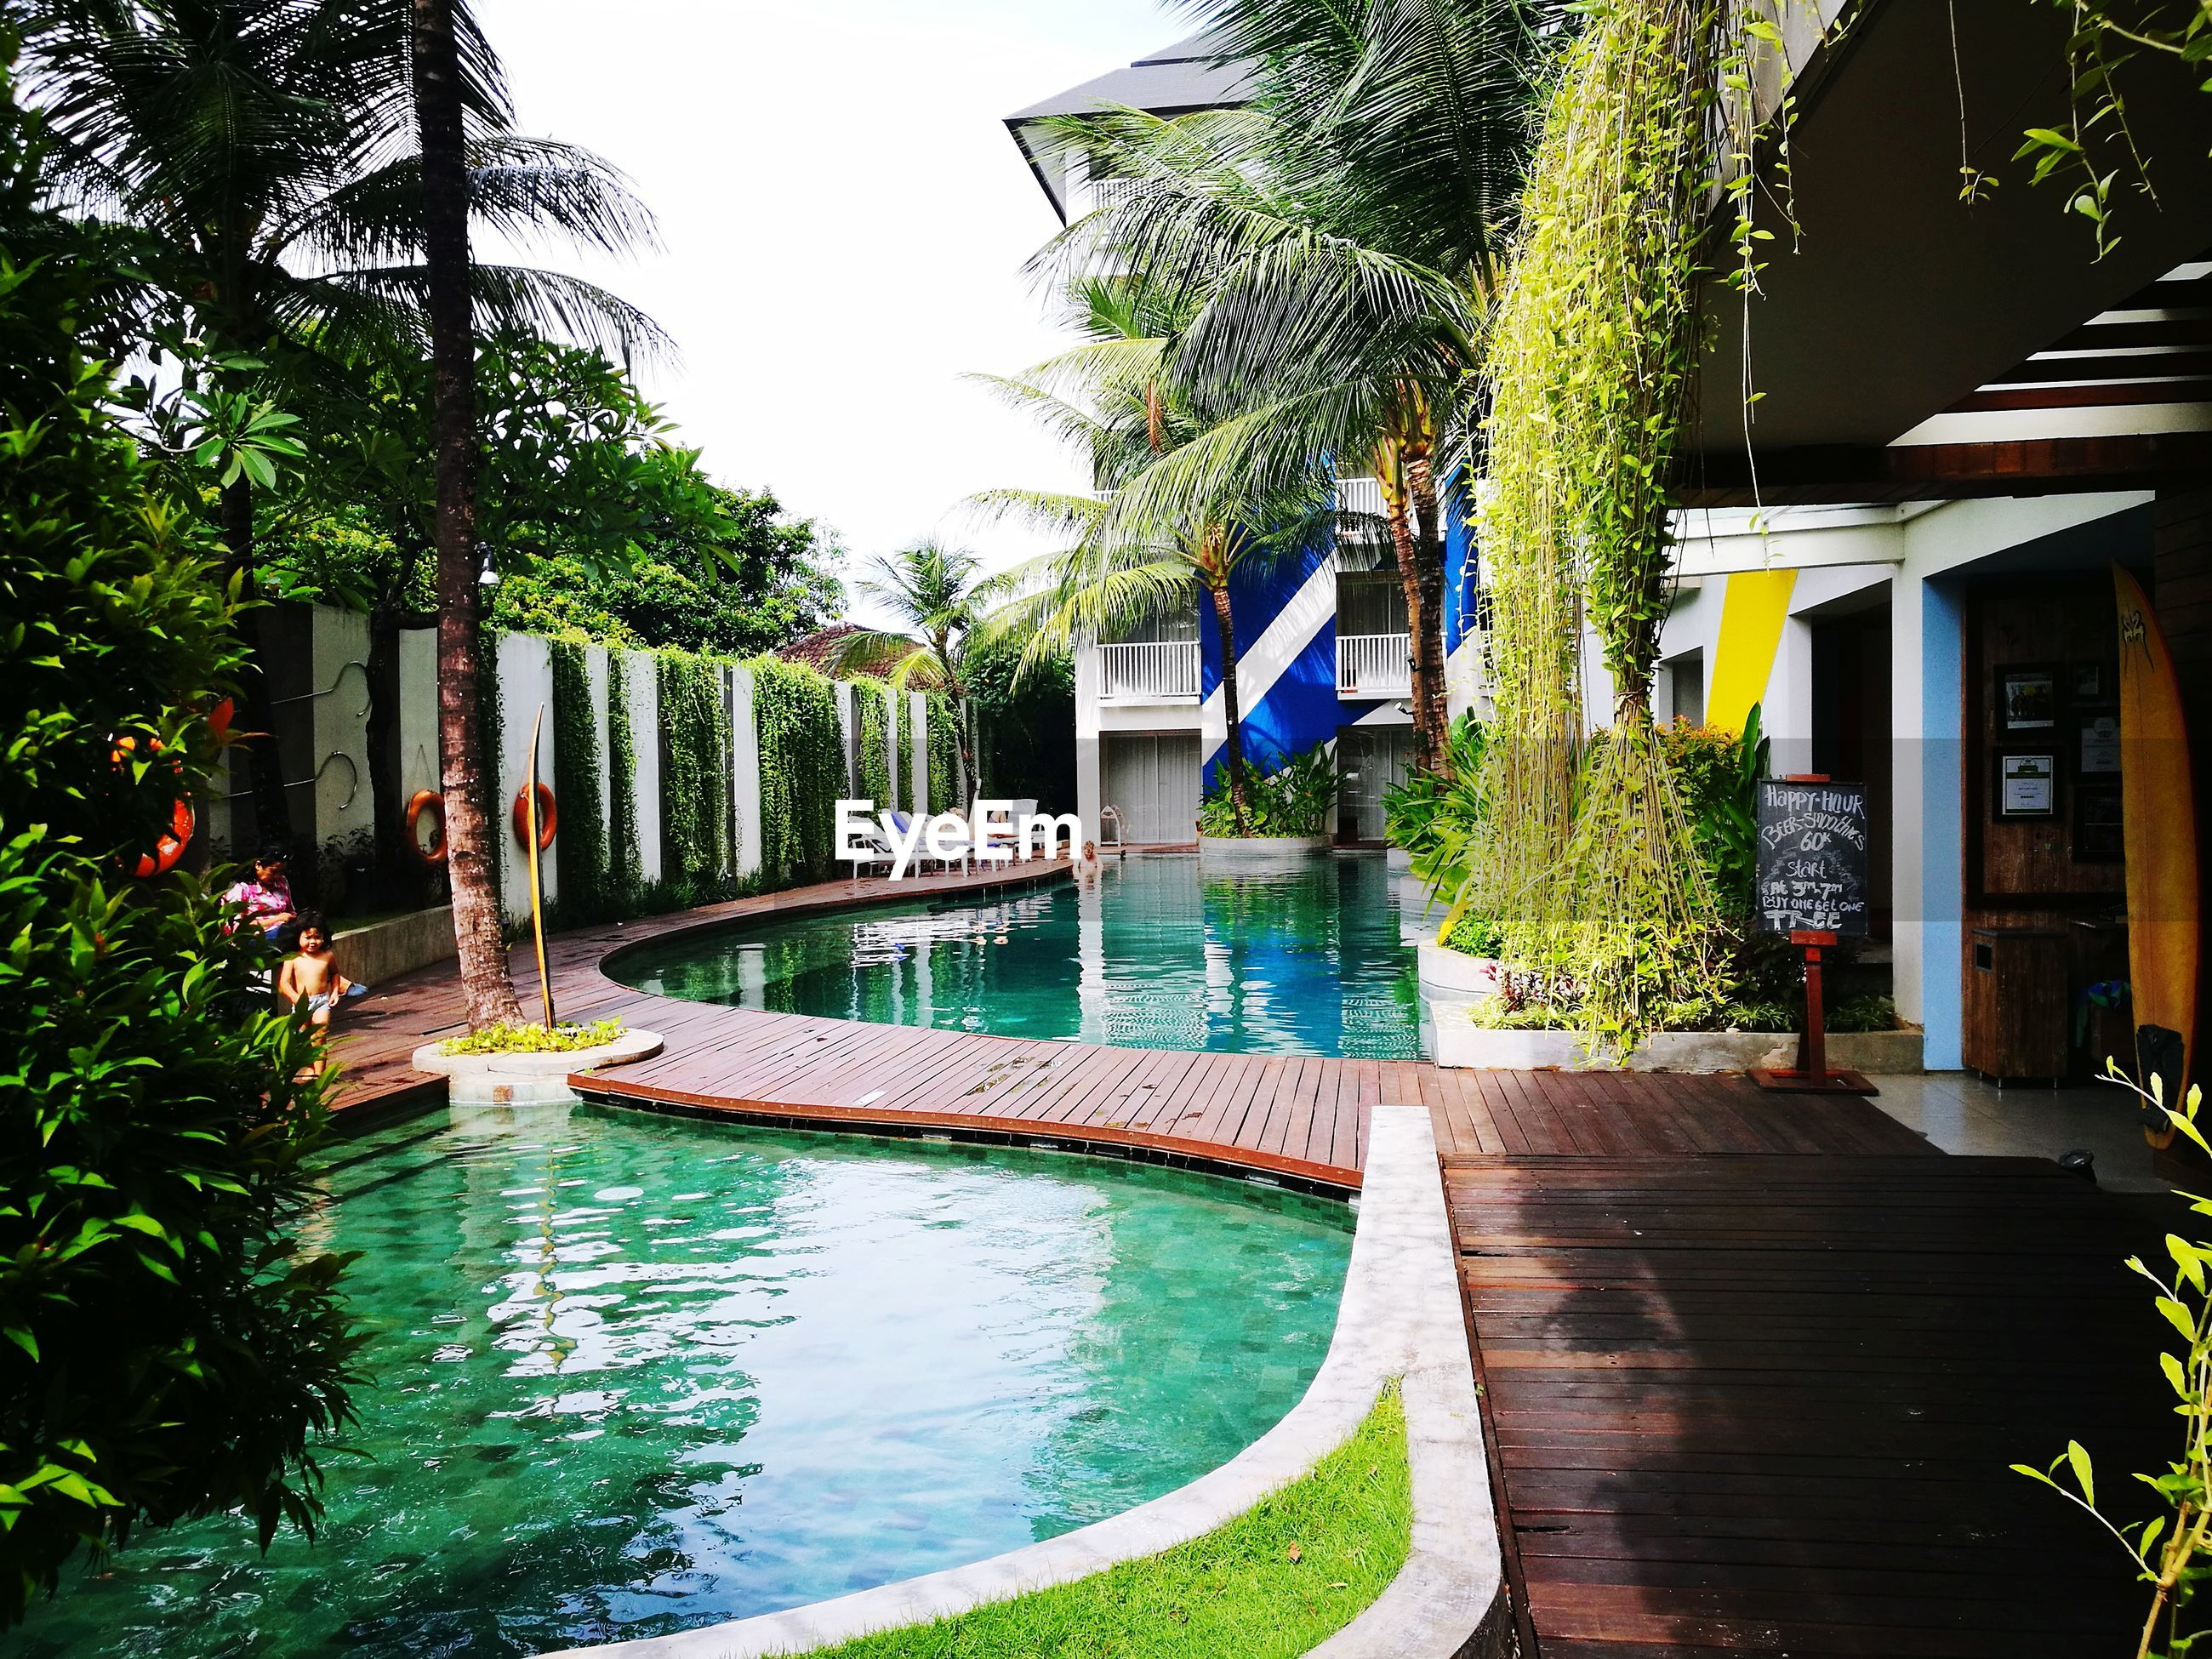 swimming pool, water, tree, palm tree, building exterior, architecture, tourist resort, growth, outdoors, built structure, day, vacations, luxury hotel, luxury, no people, plant, nature, beauty in nature, sky